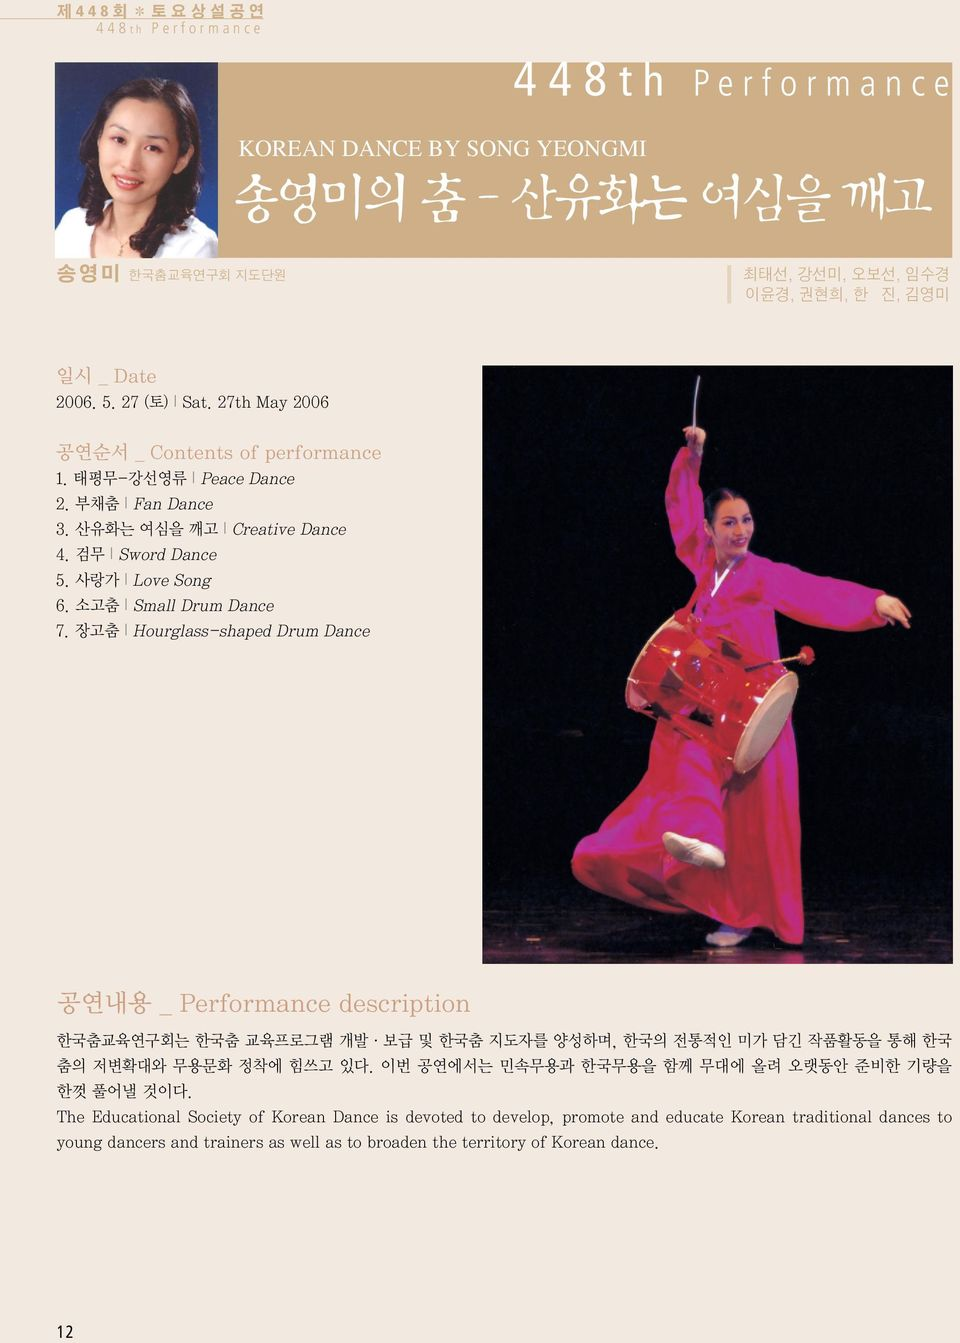 KOREAN DANCE BY SONG